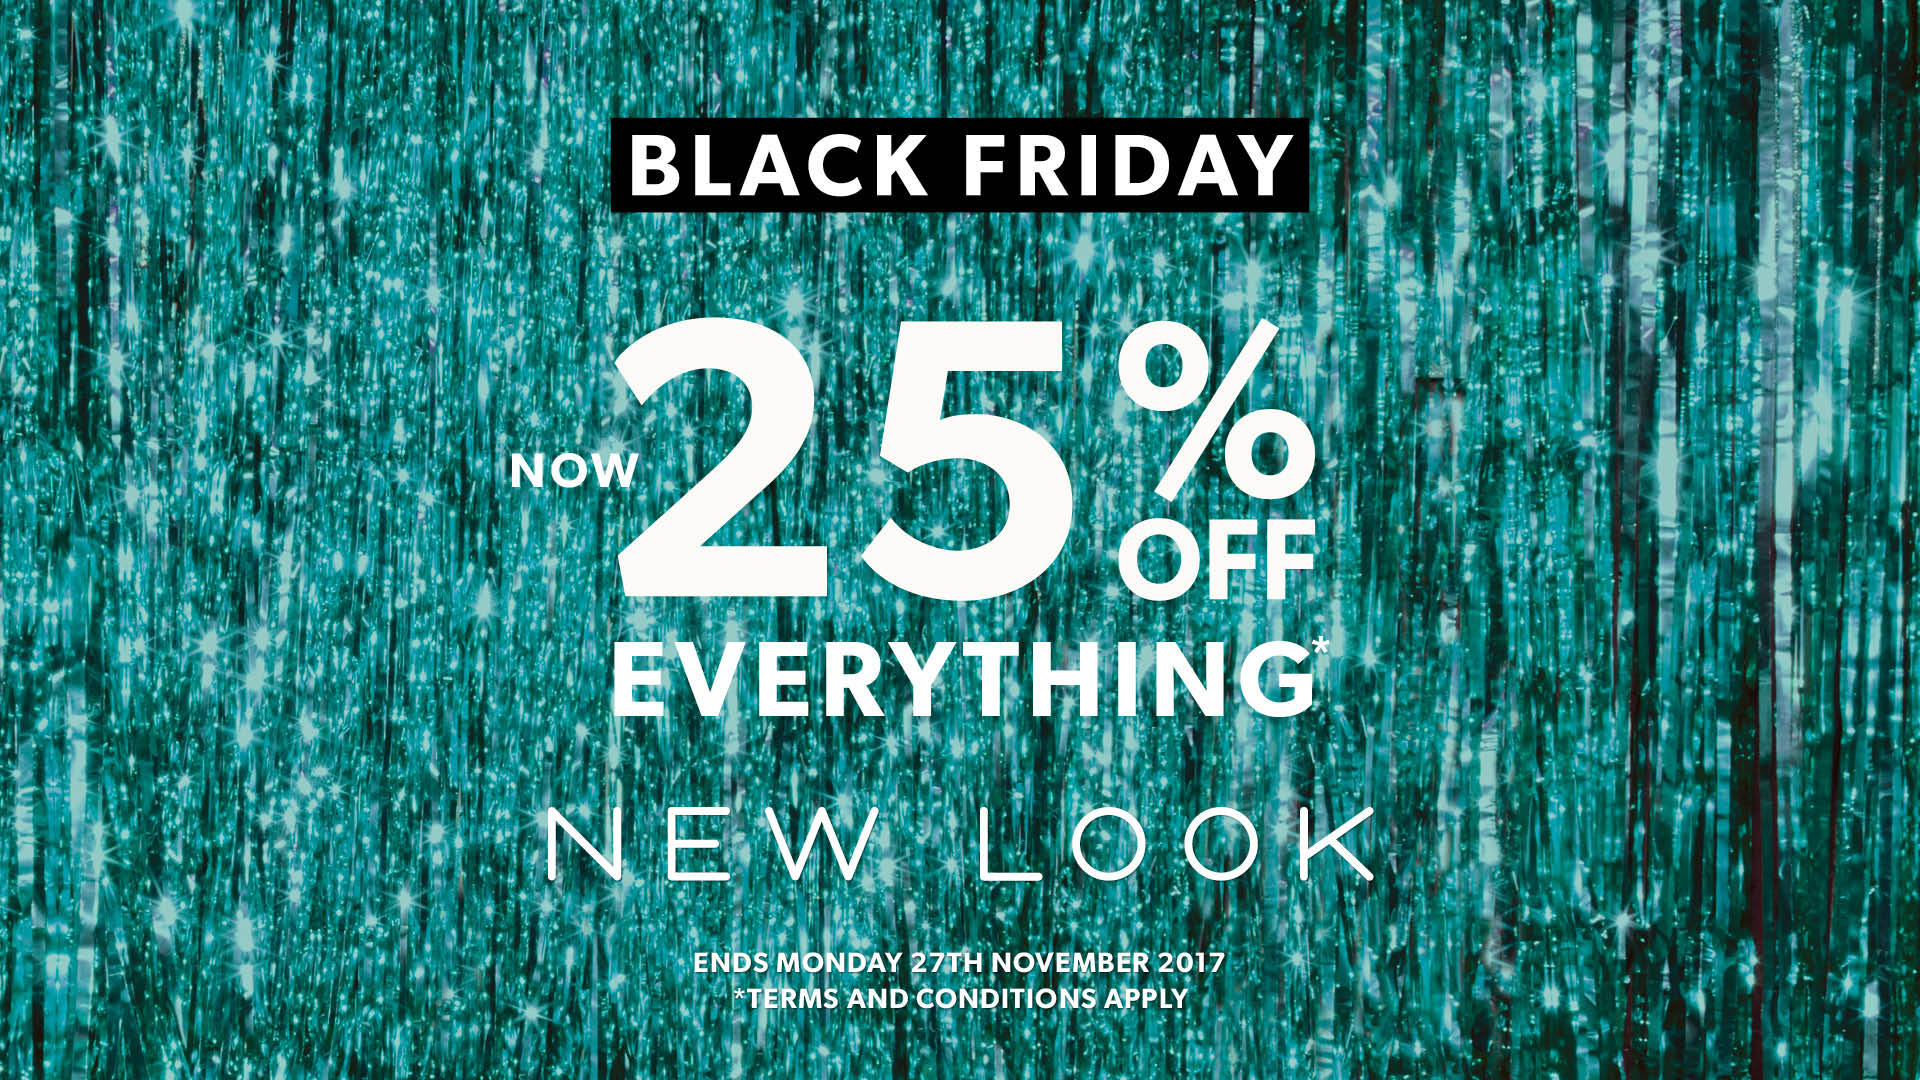 New Look Black Friday